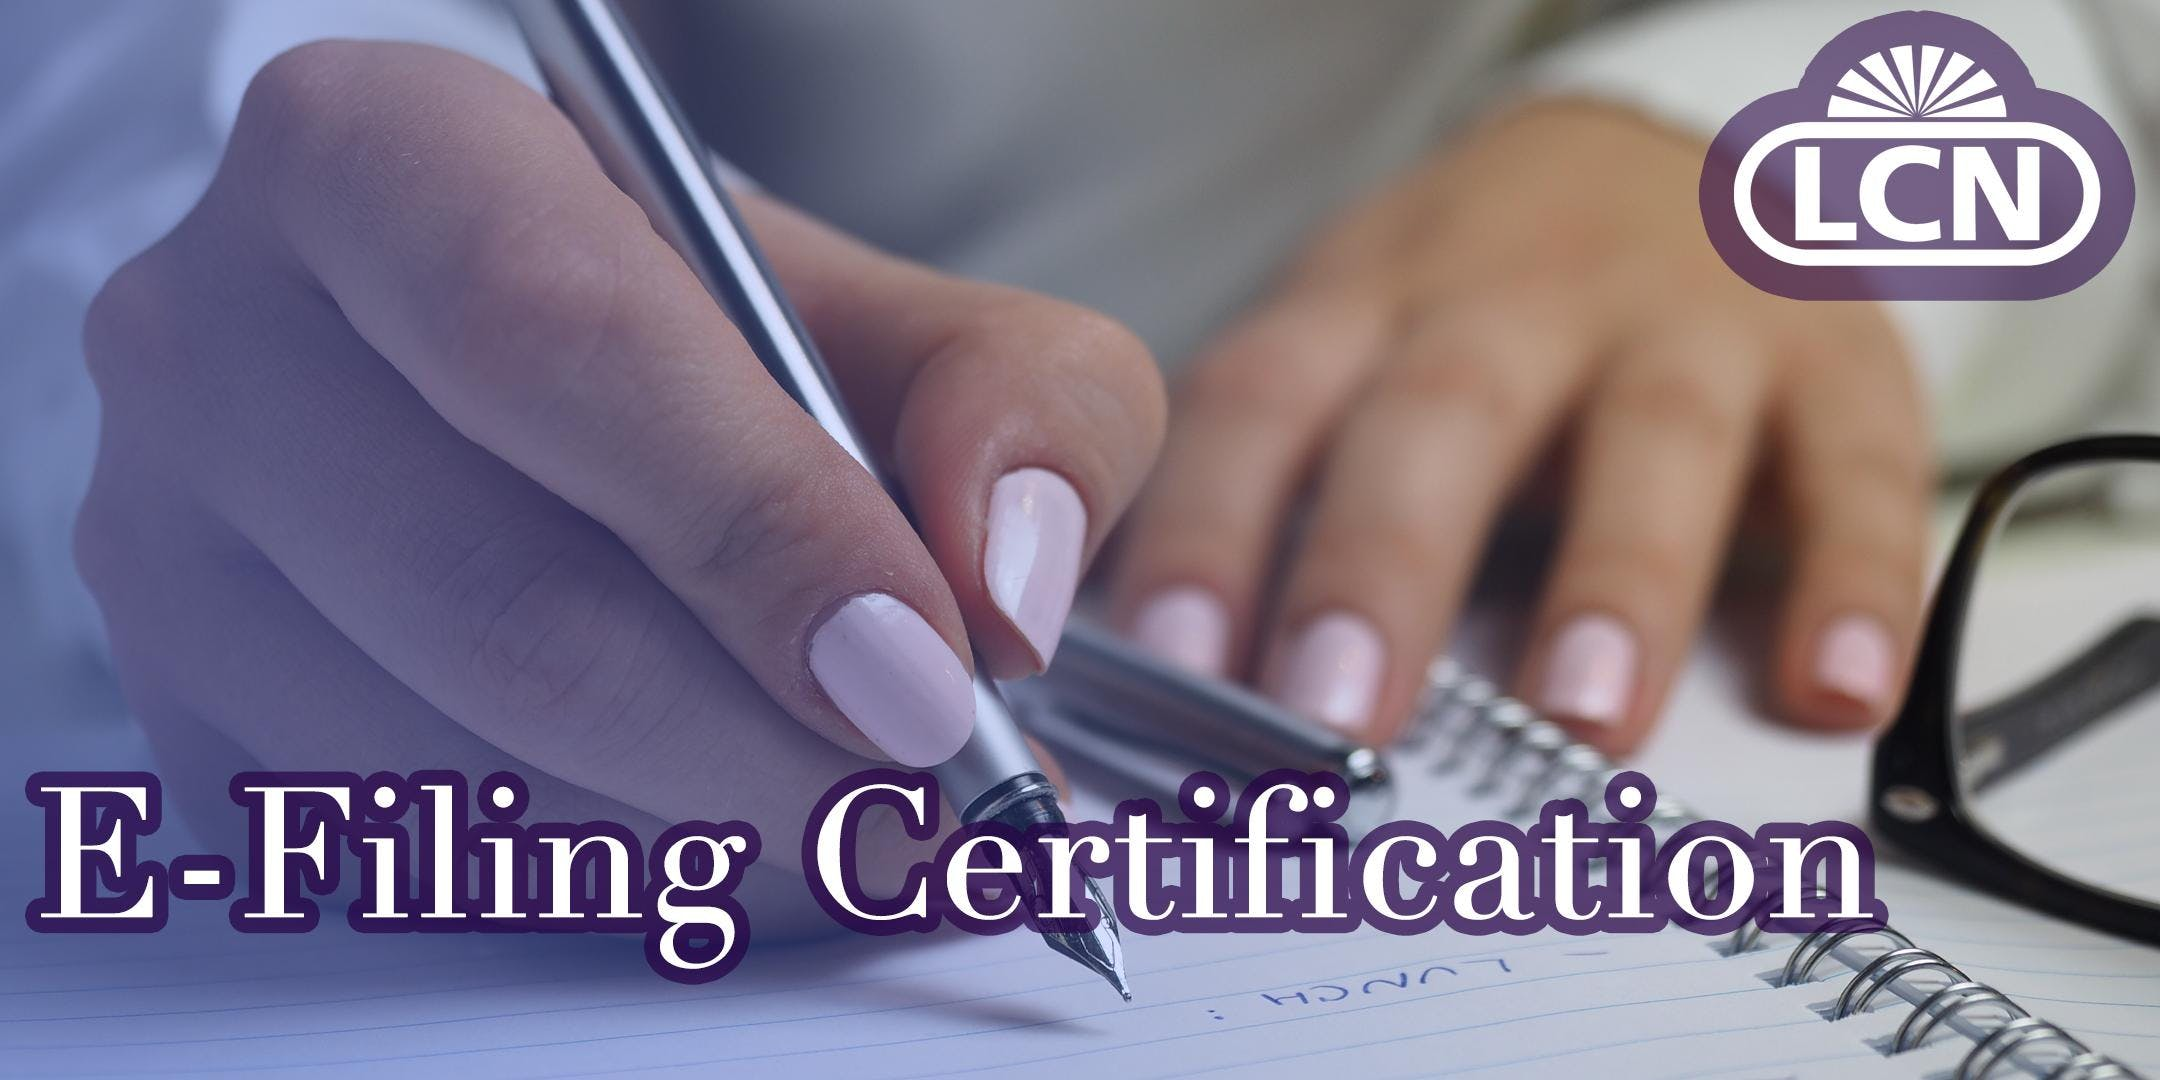 E-Filing Certification - Phoenix, AZ